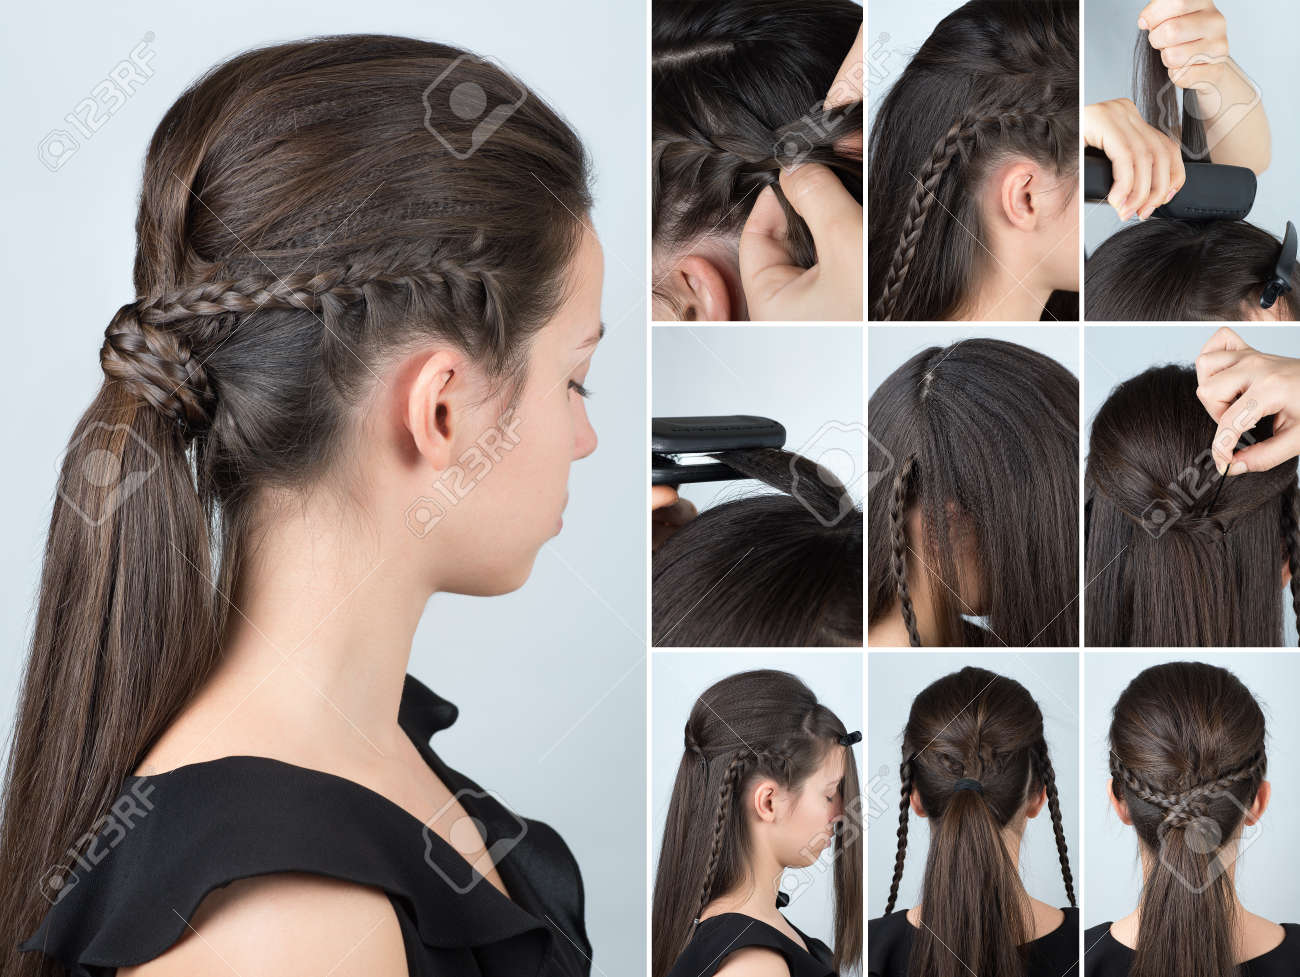 Volume Hairstyle Ponytail With Plait Tutorial Hairstyle For Stock